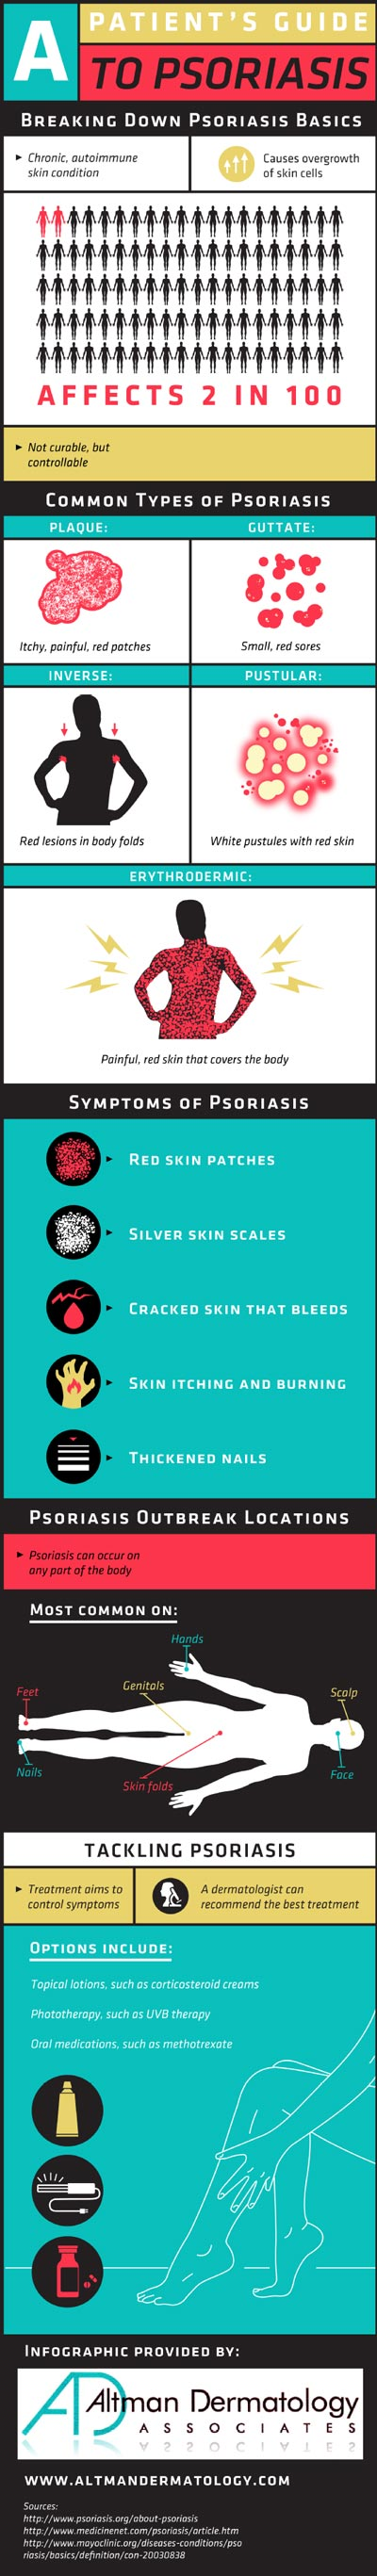 A patient's guide to psoriasis infographic